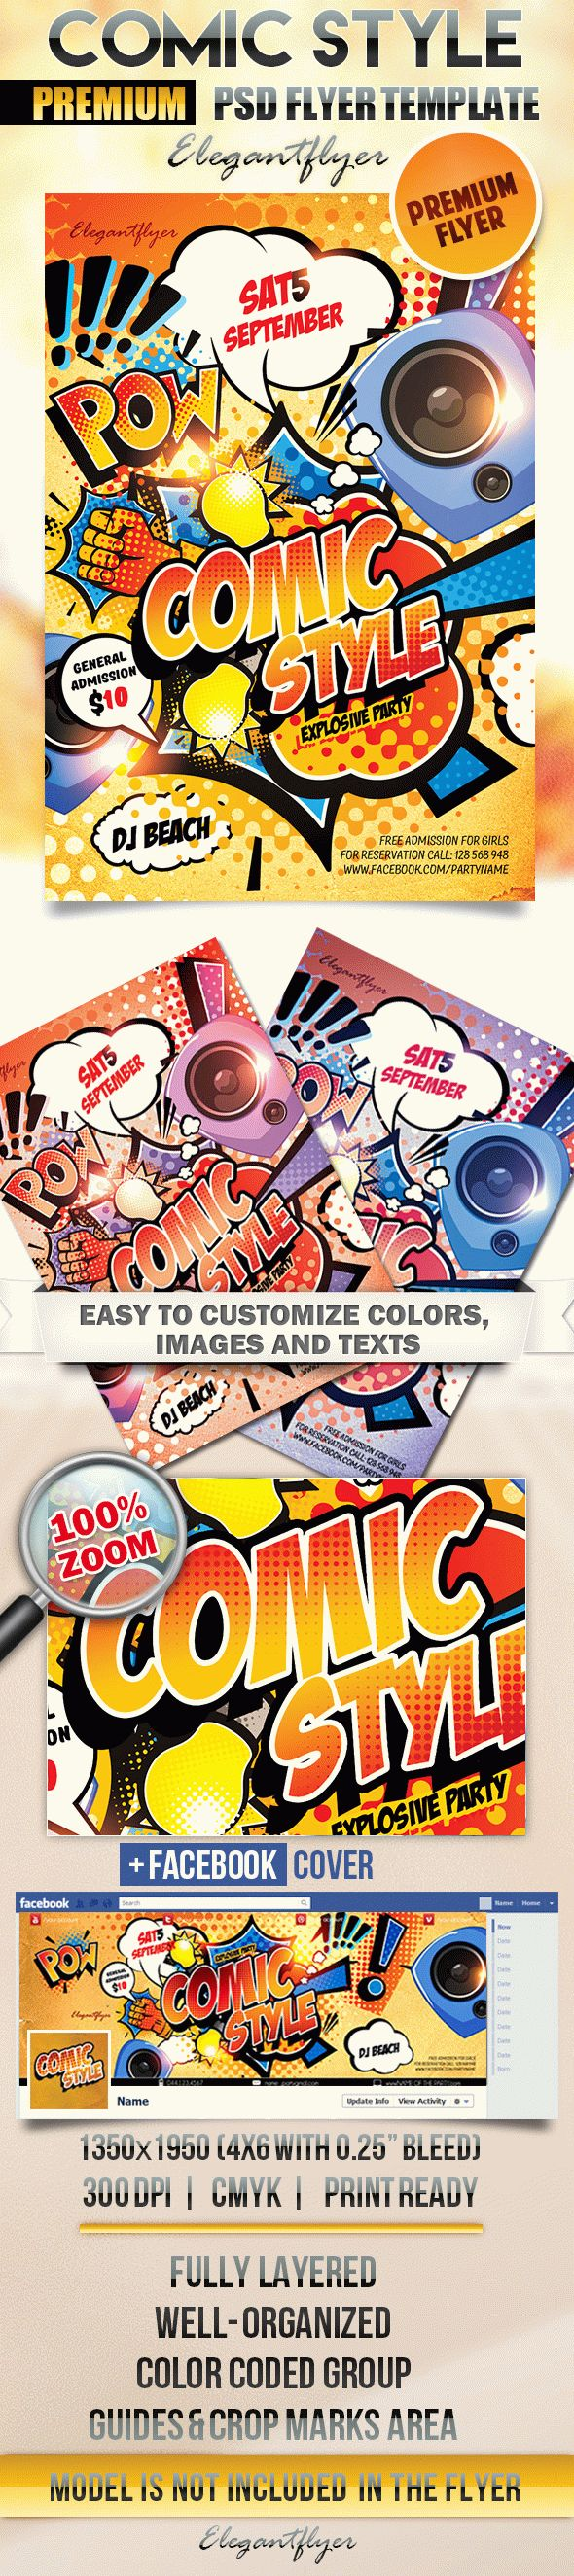 Comic Book Cover Template Psd : Comic style flyer psd template facebook cover by